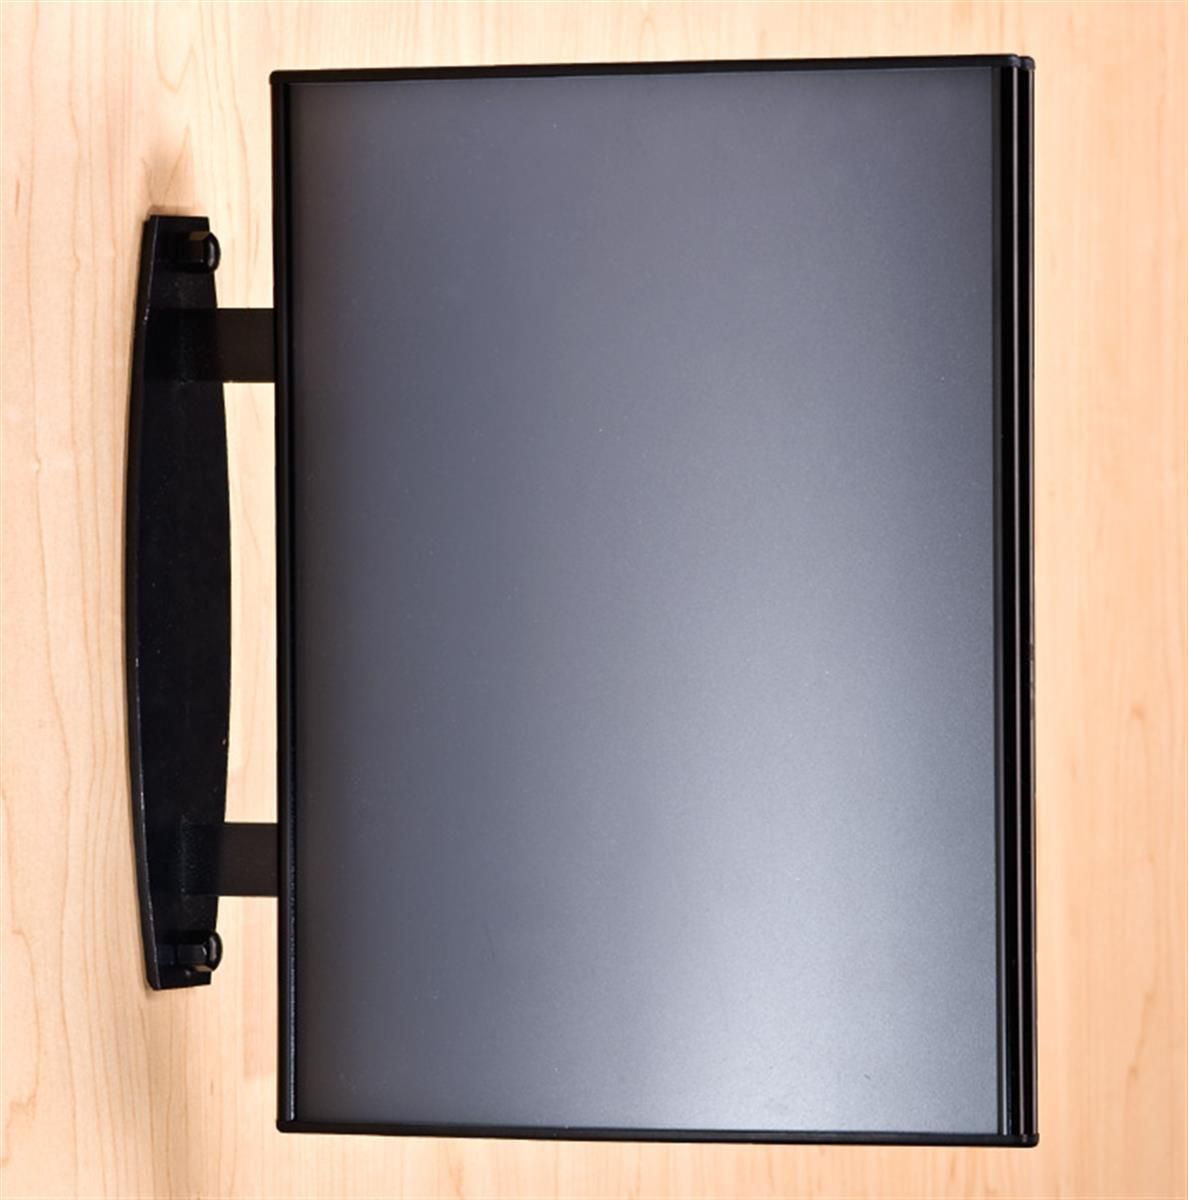 8 5 X 11 Curved Sign Holder For Wall Or Ceiling Double Sided Snap Out Lens Black Sign Holder Wall Signs Black Hallway